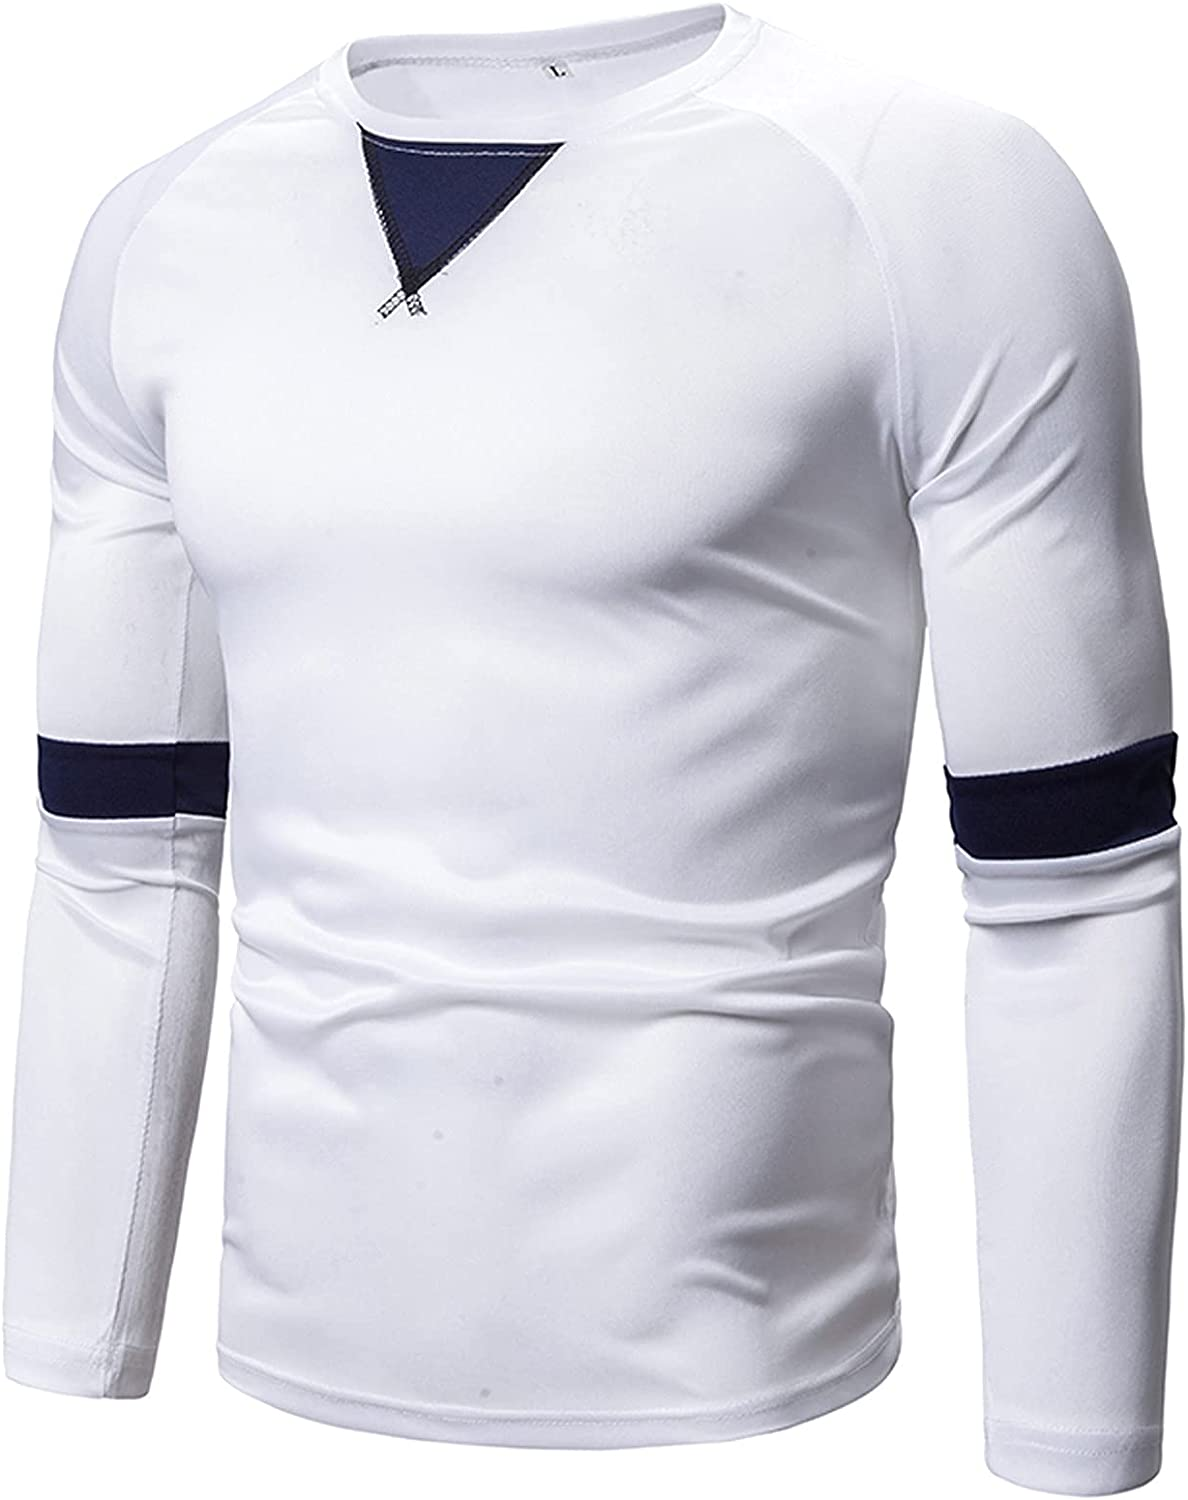 HONGJ Long Sleeve T-shirts for Mens, 2021 New Fall Splice Patchwork Workout Athletics Sports Casual Crewneck Tee Tops